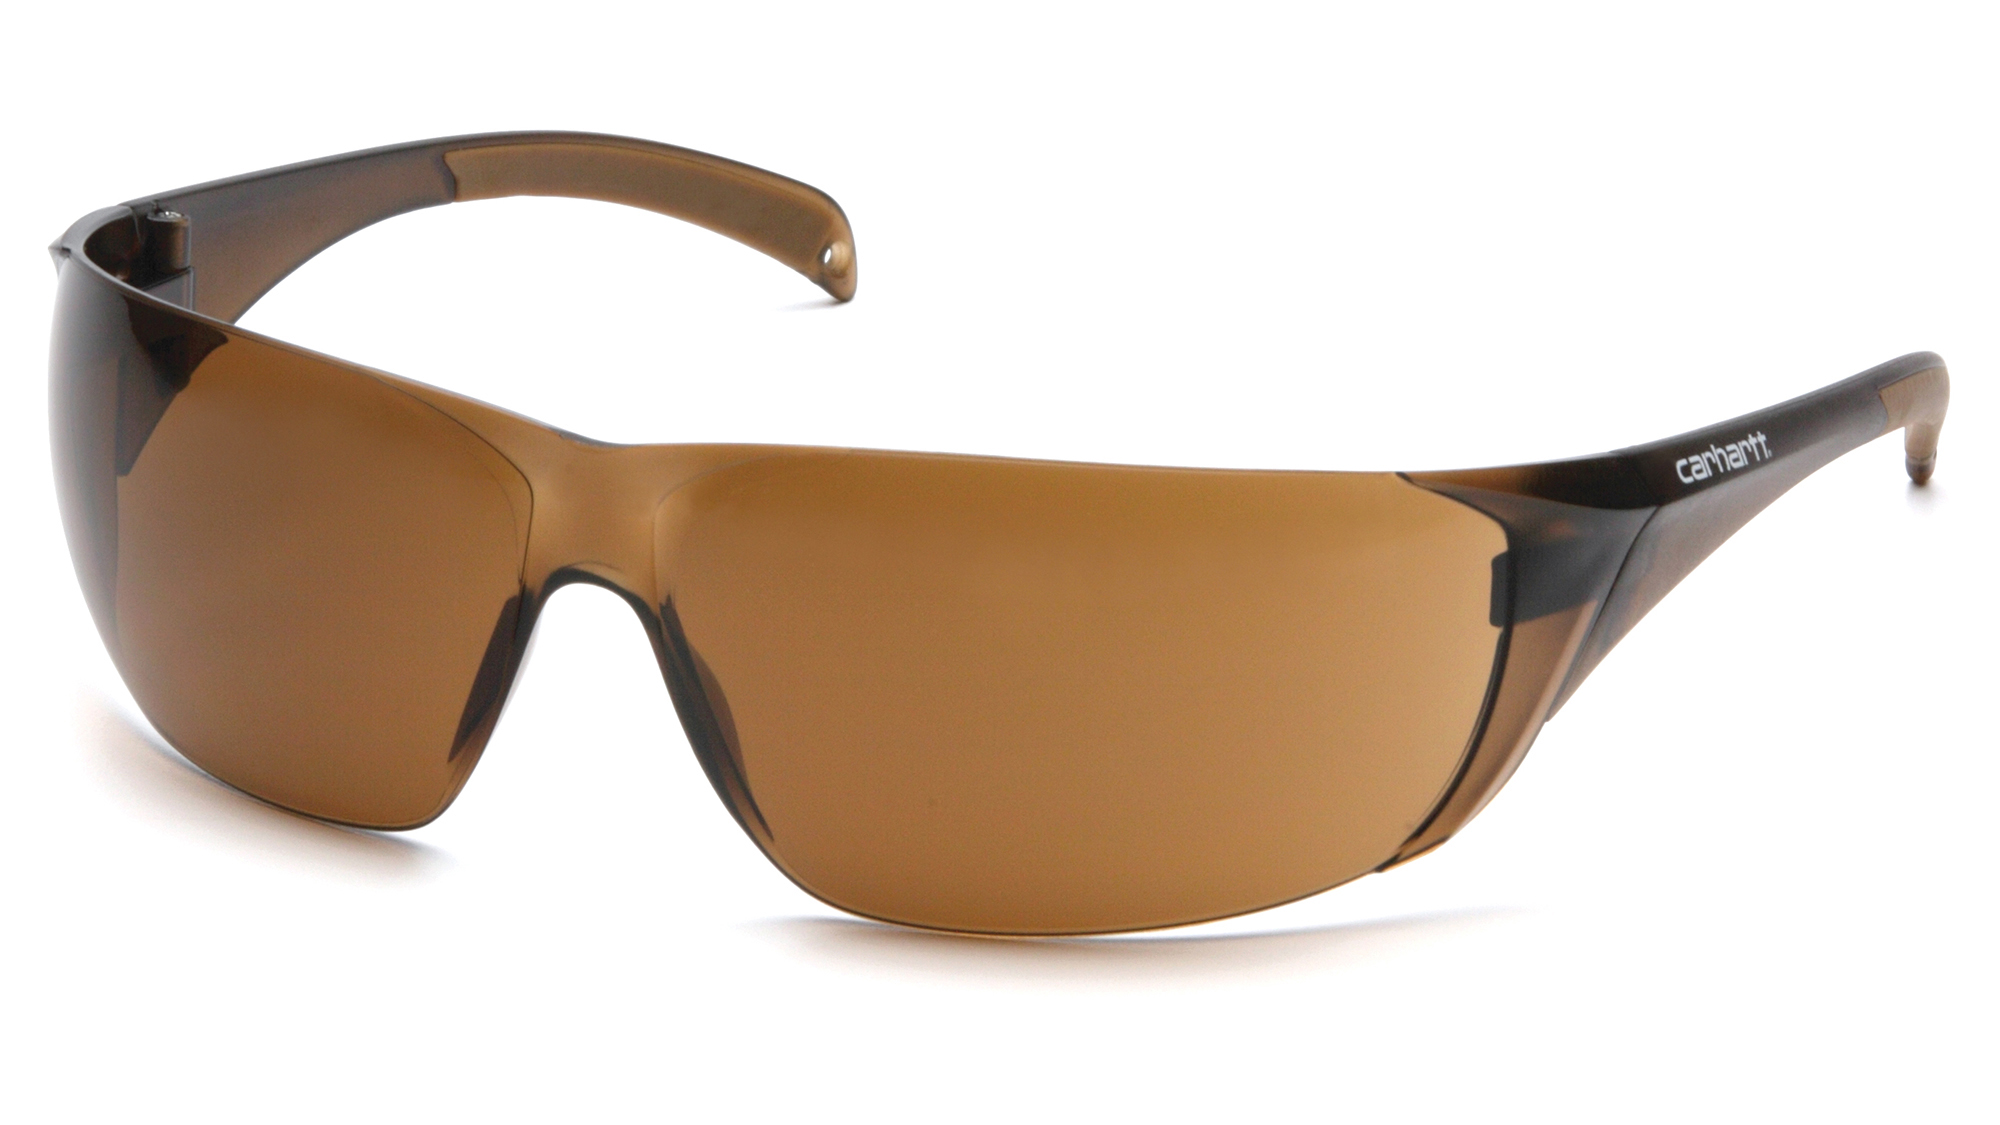 Carhartt Billings Sandstone Bronze Lens Safety Glasses -Safety Glasses